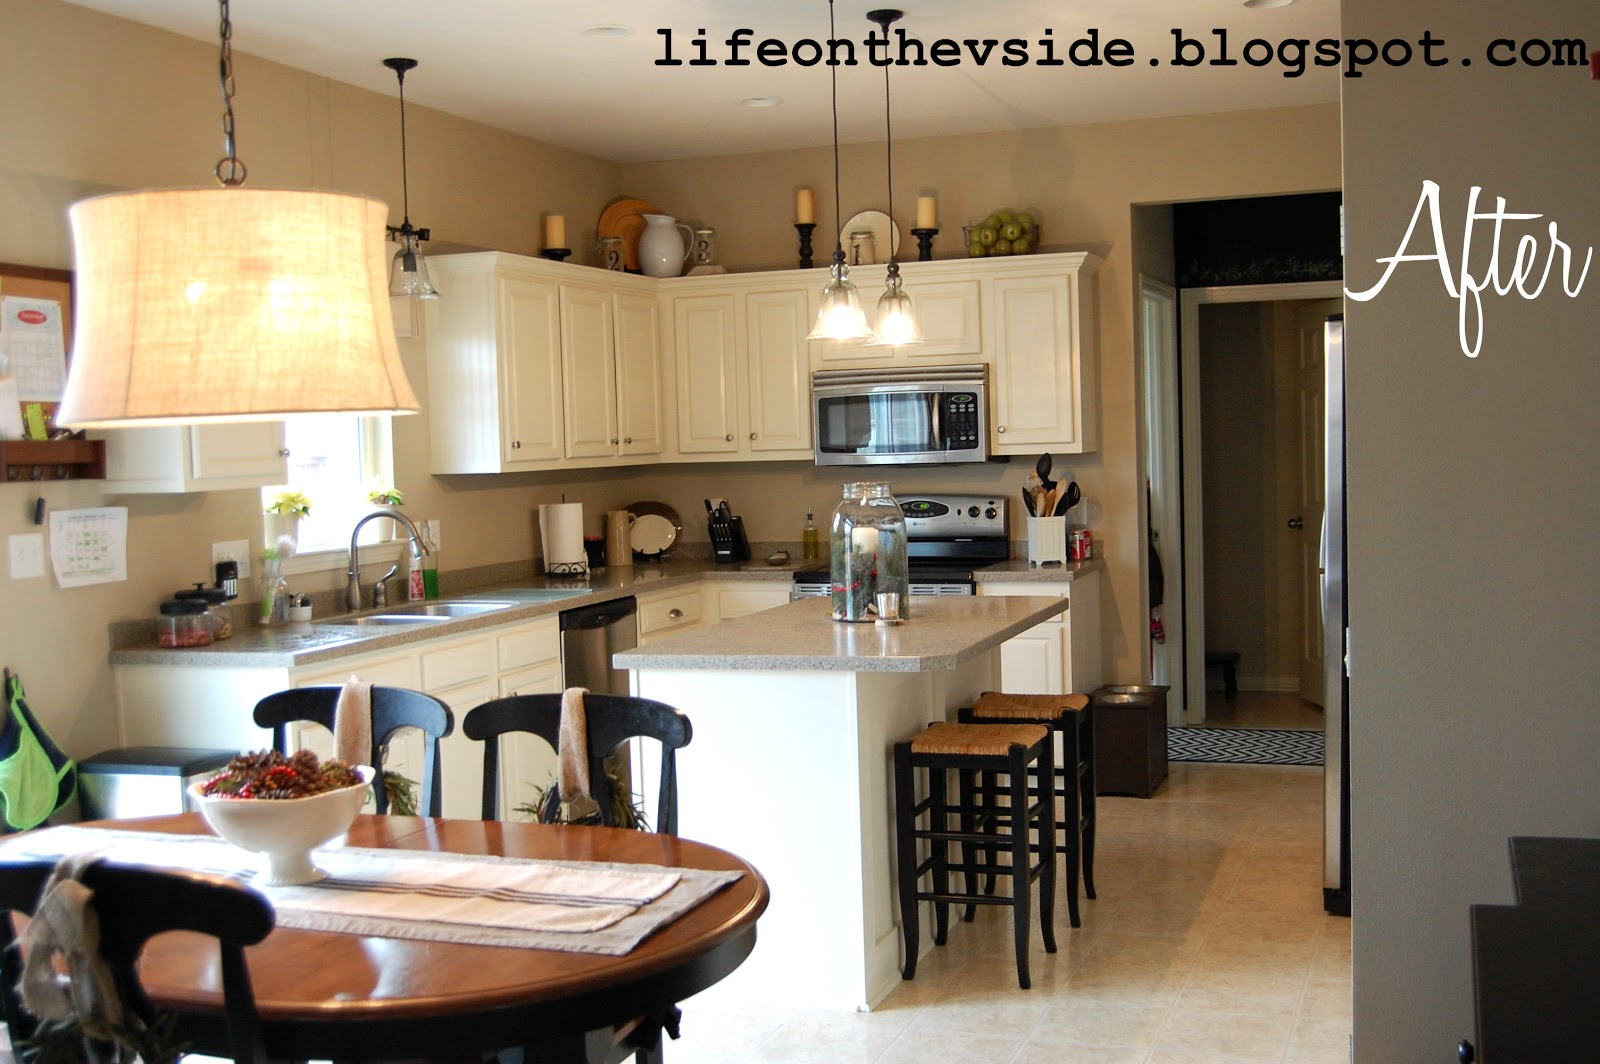 kitchen before after painted kitchen painted kitchen cabinets Kitchen Before After Painted Kitchen Cabinets